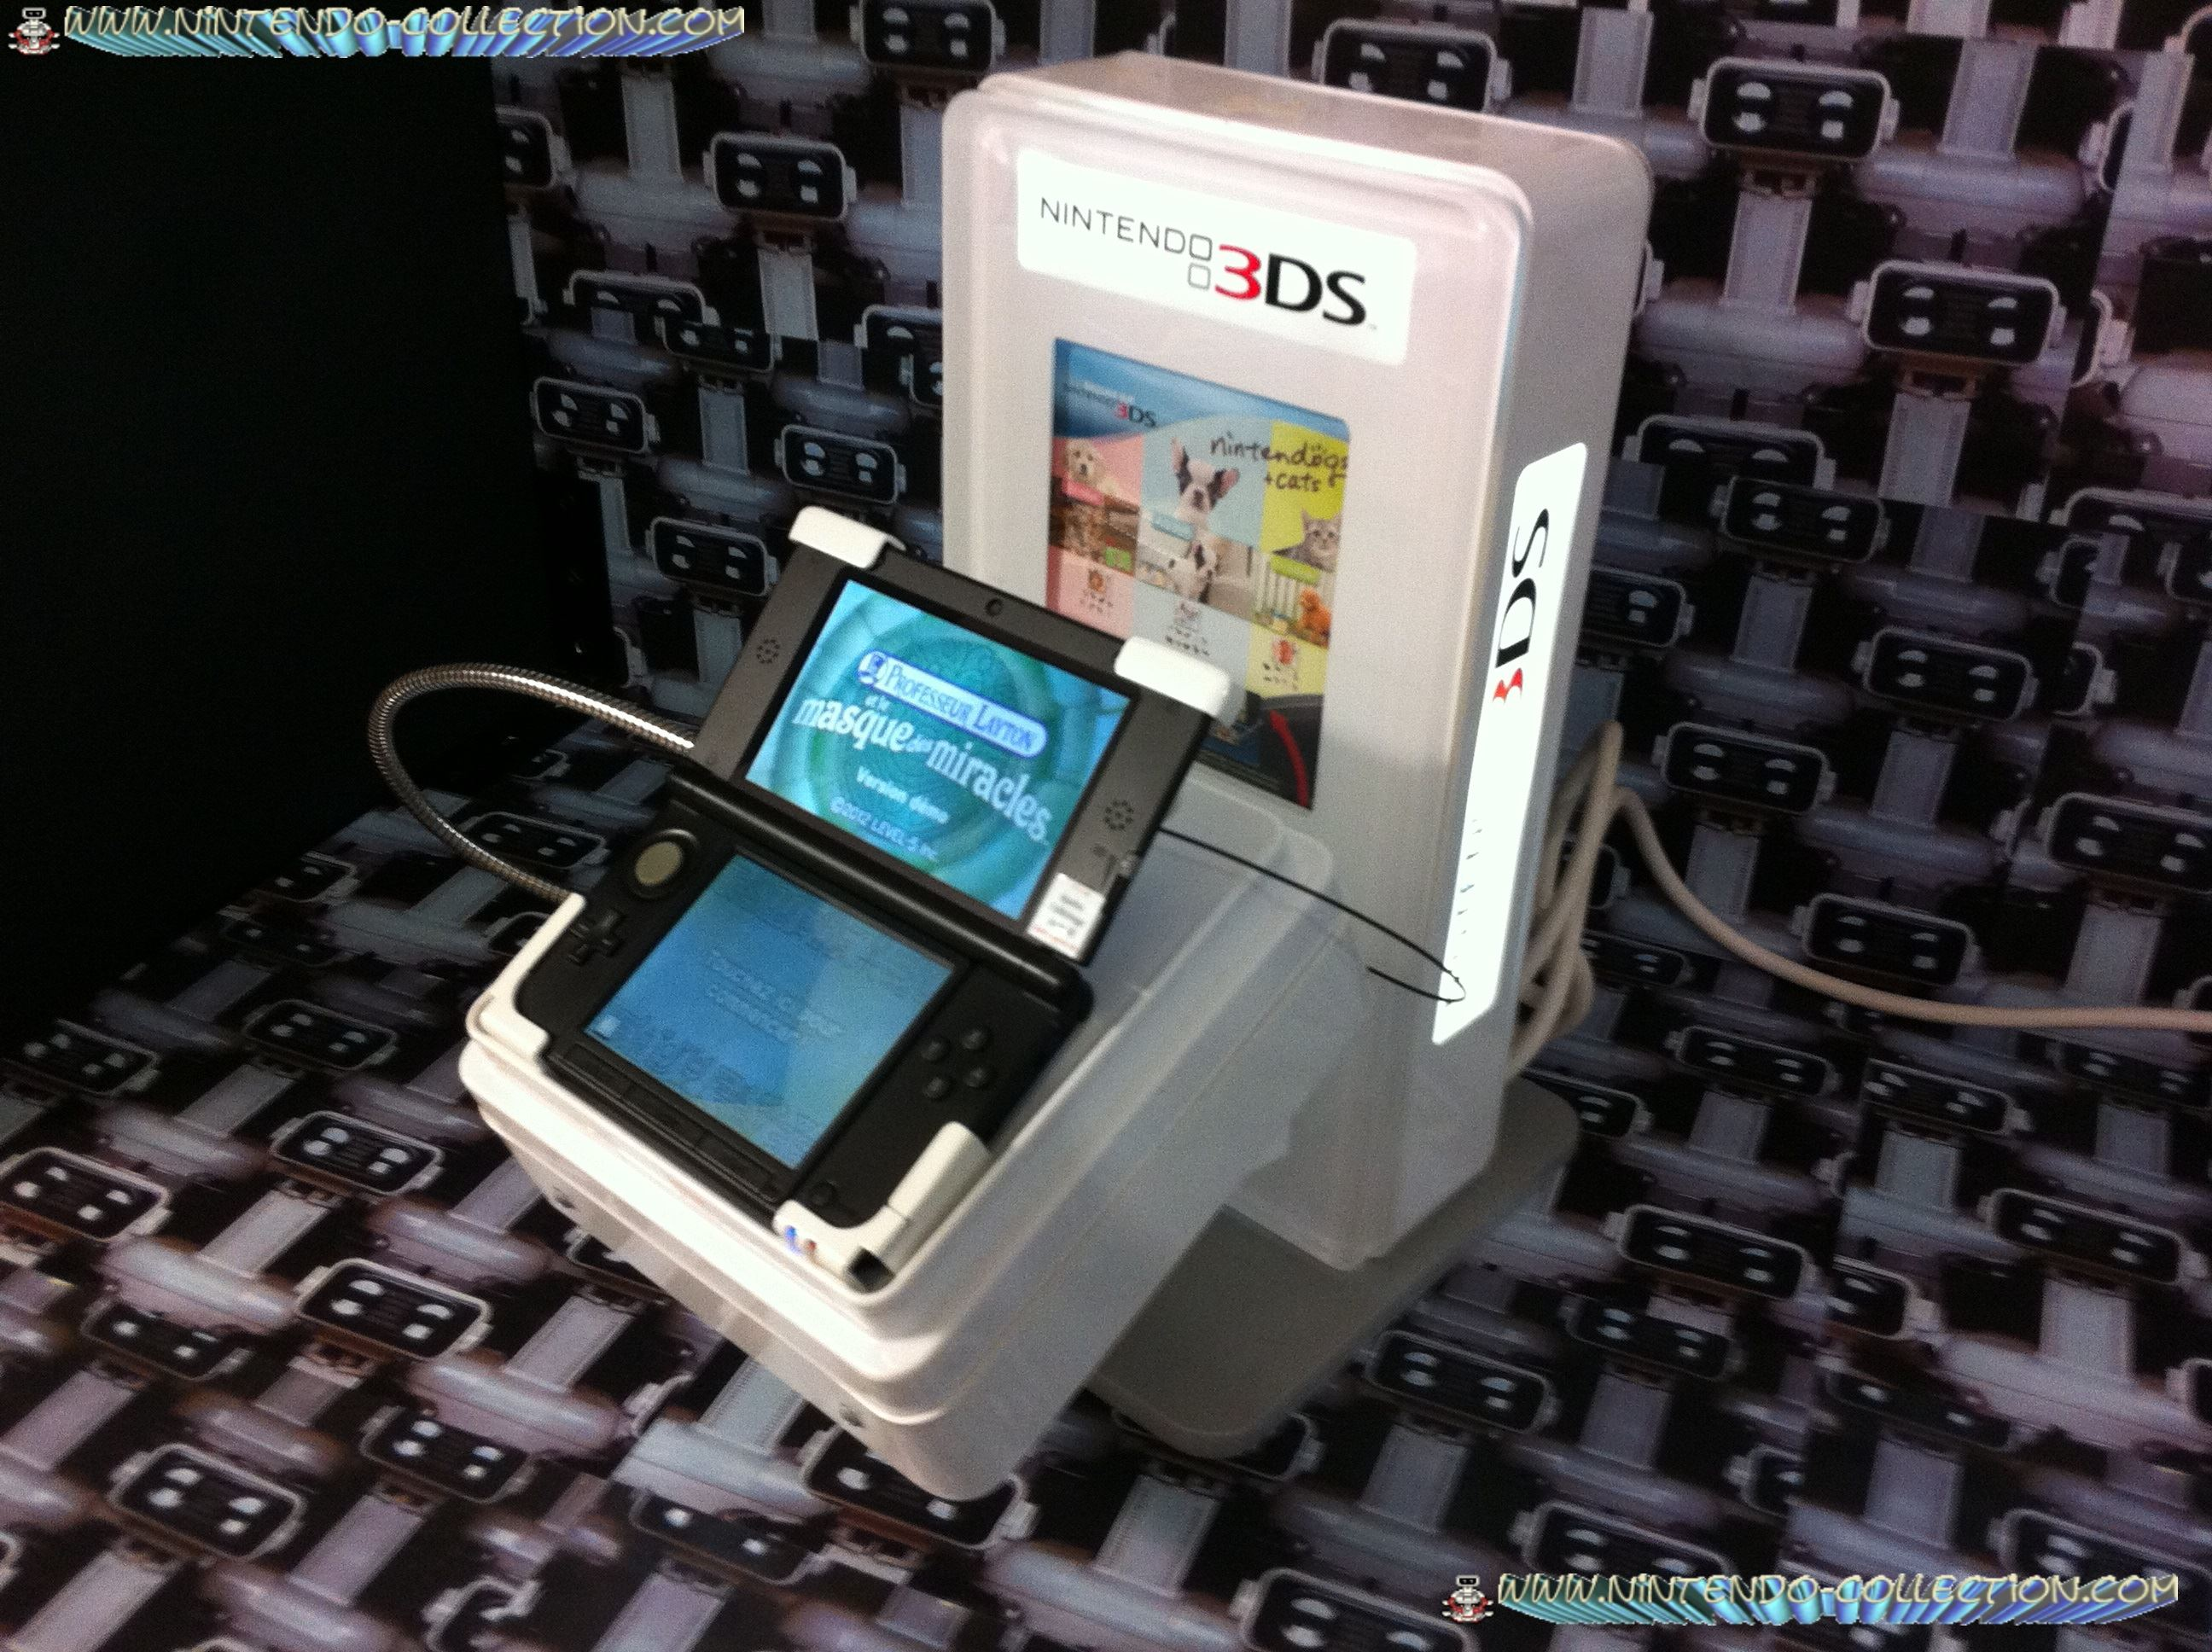 www.nintendo-collection.com - Borne Kiosk  Demo 3DS XL LL Comptoir Counter Display